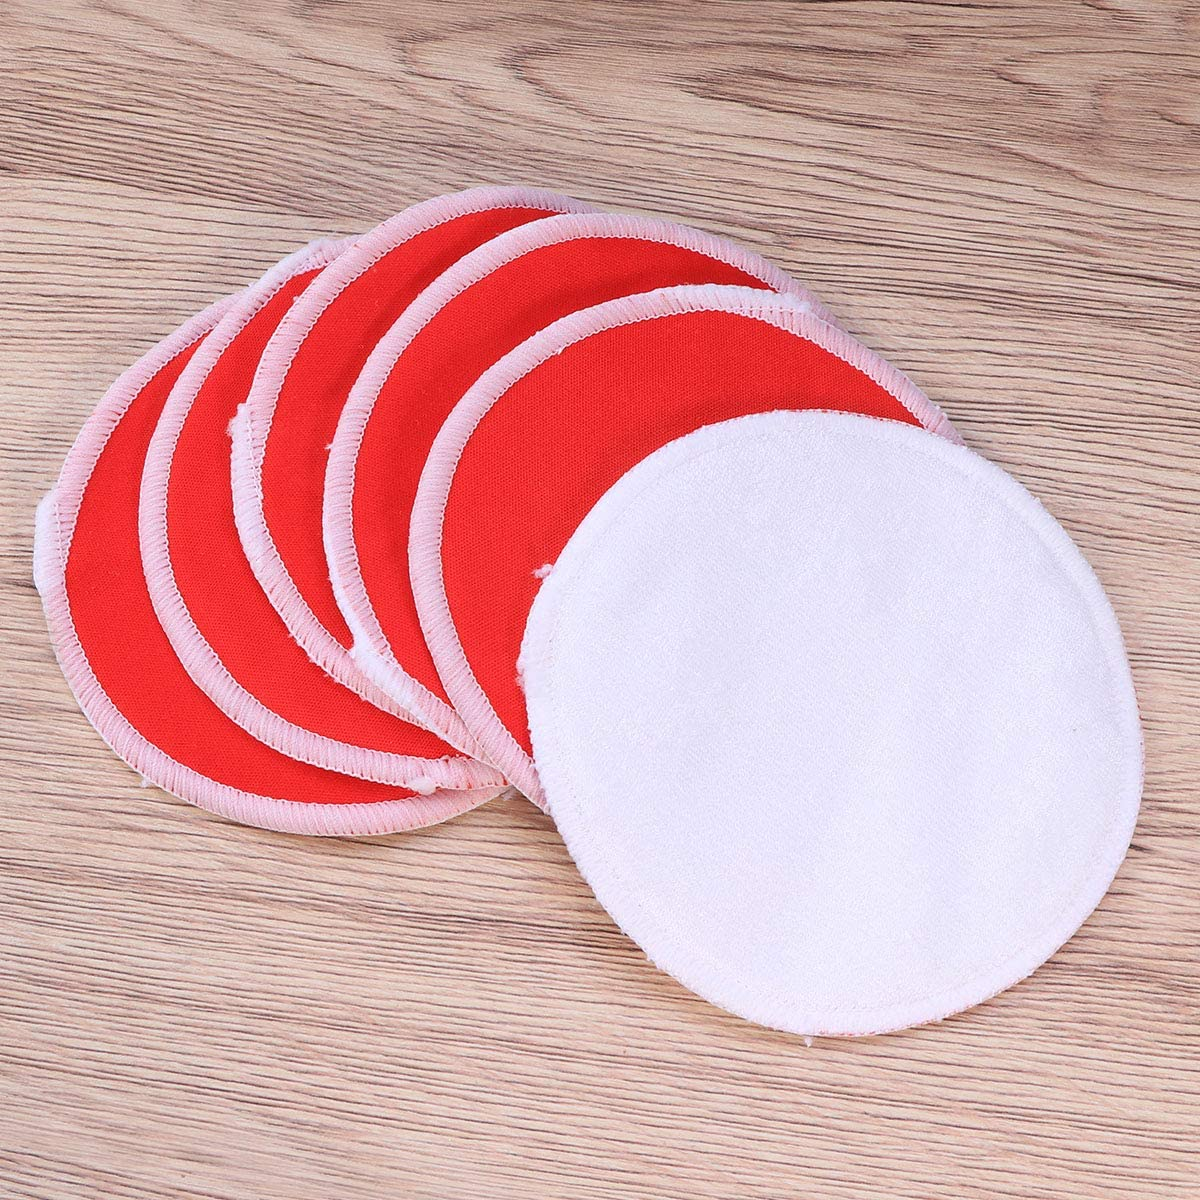 Beaupretty 6PCS Bamboo Nursing Pads Reusable Washable Breastfeeding Pads Ultra Absorbent Bra Inserts Red